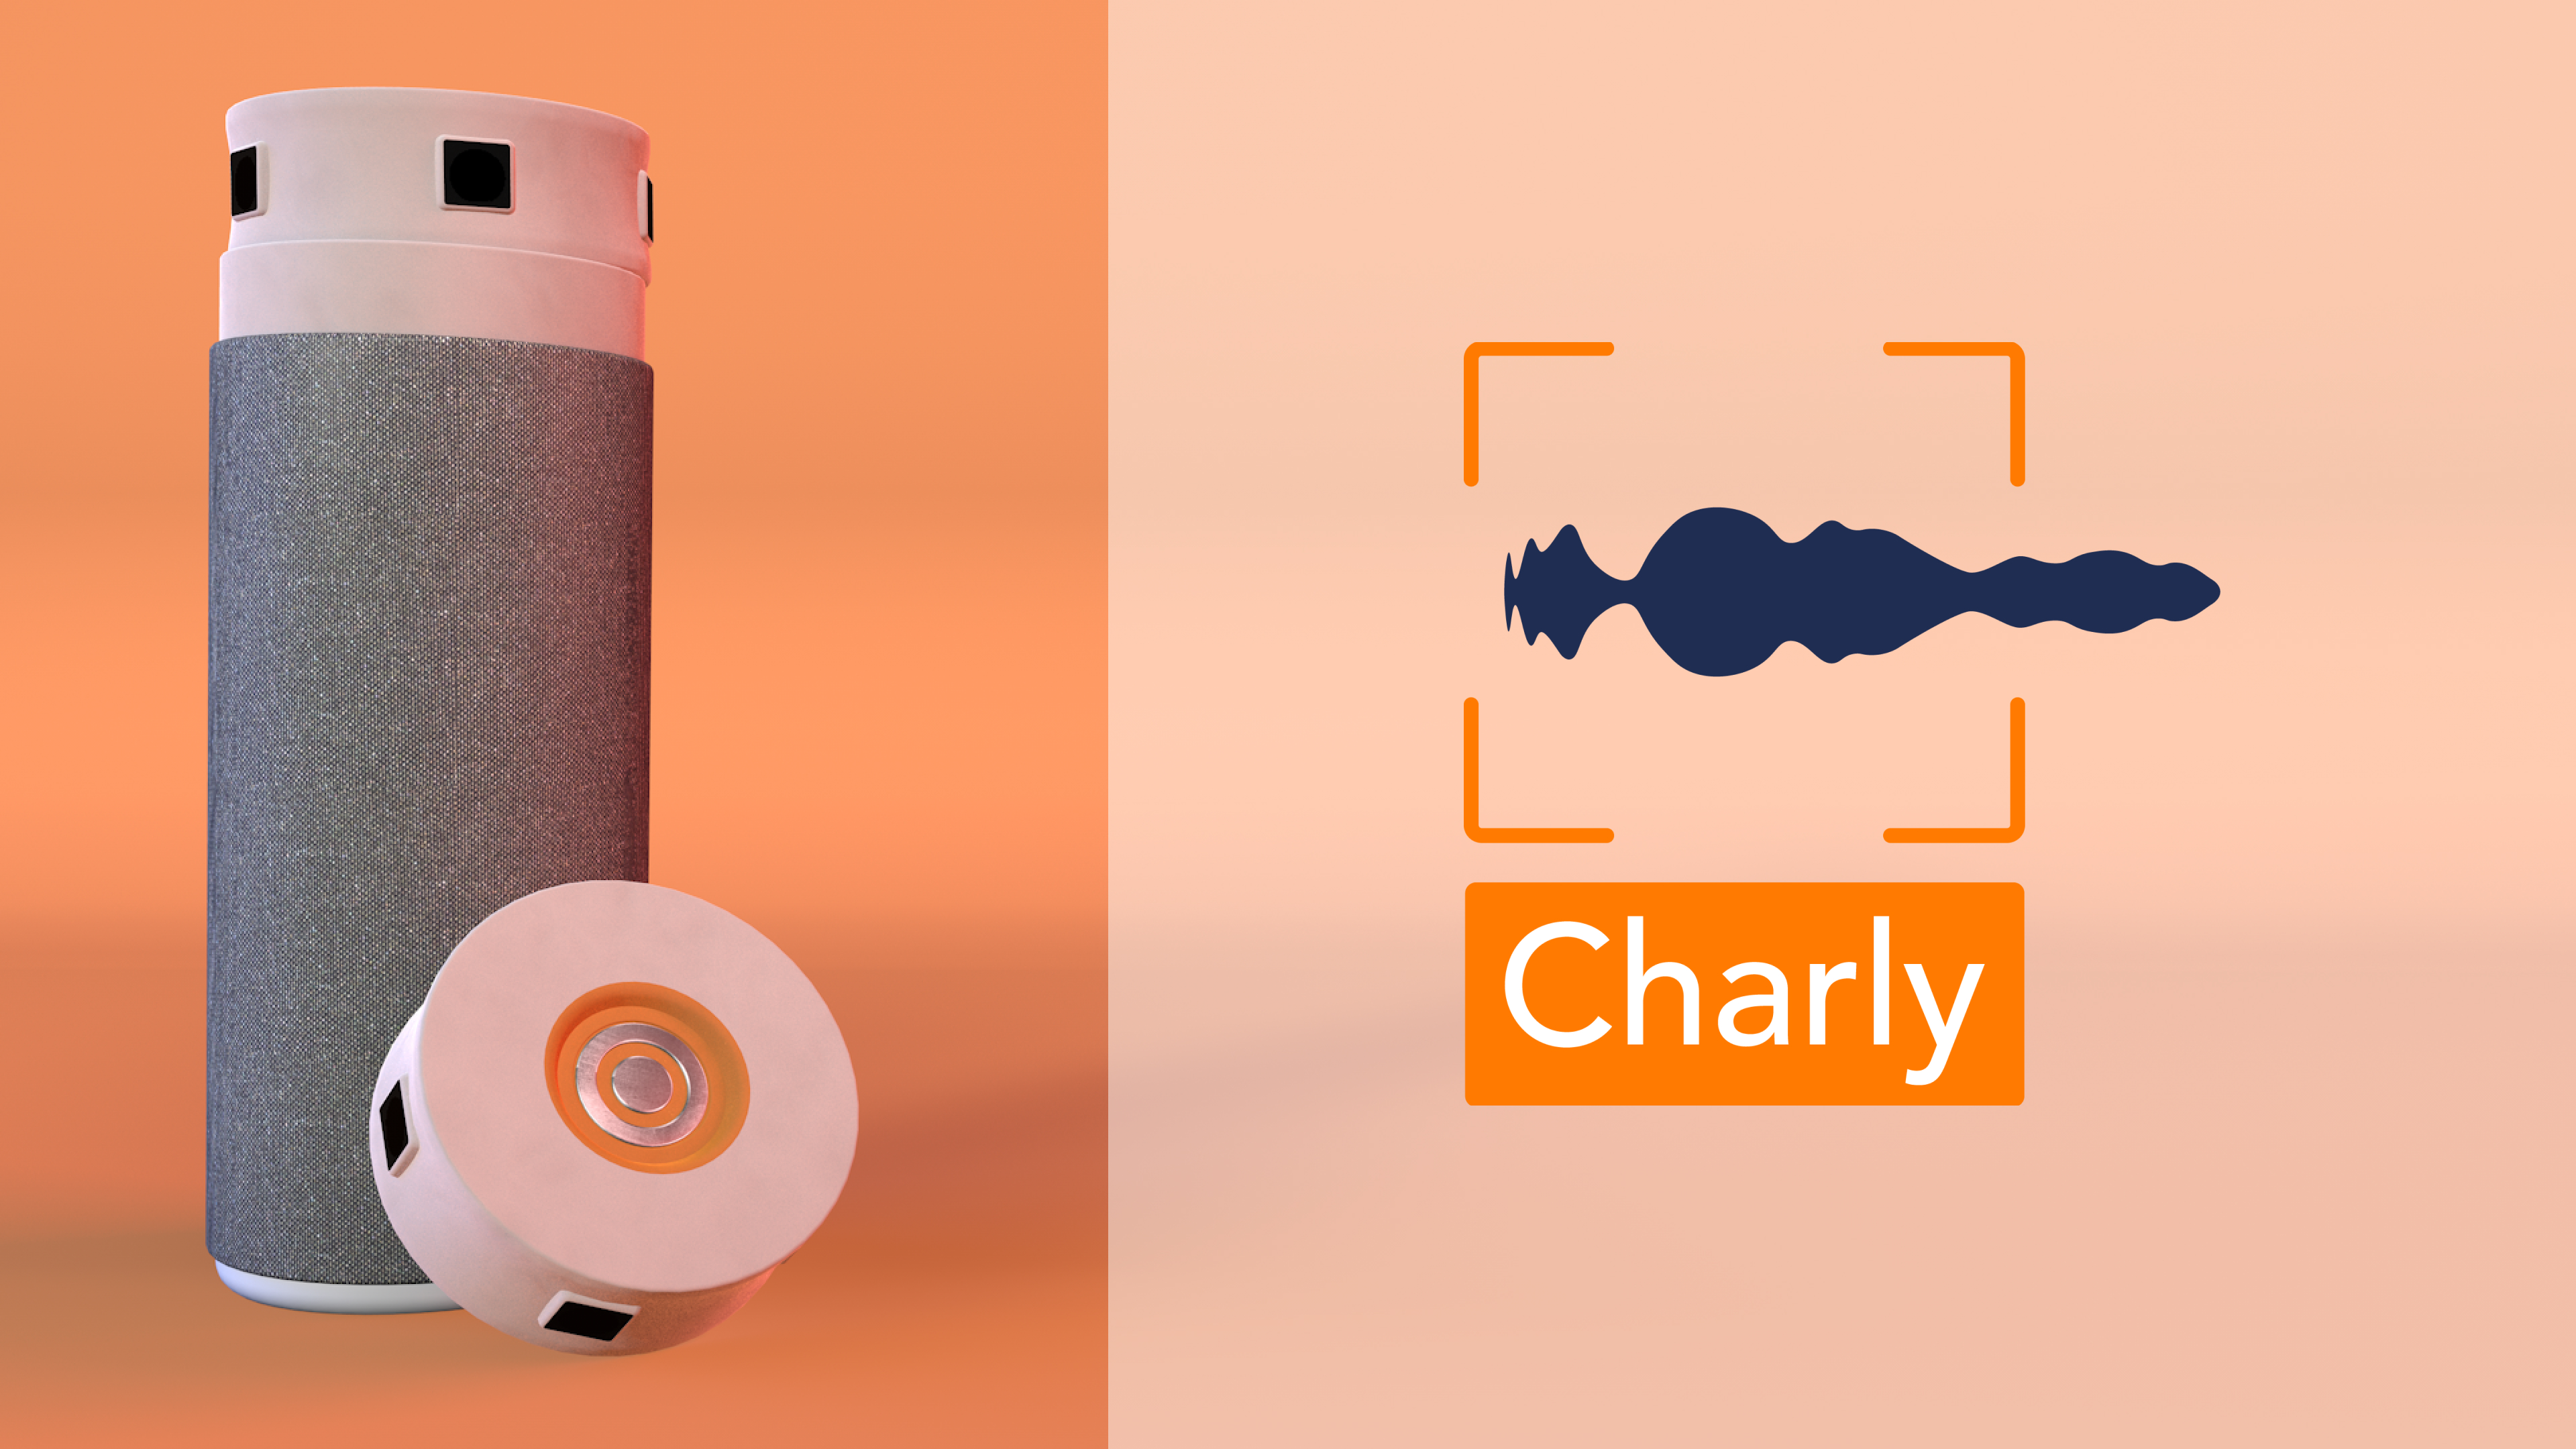 rendering of a camera-voice-assistant on the left with a logo on the right